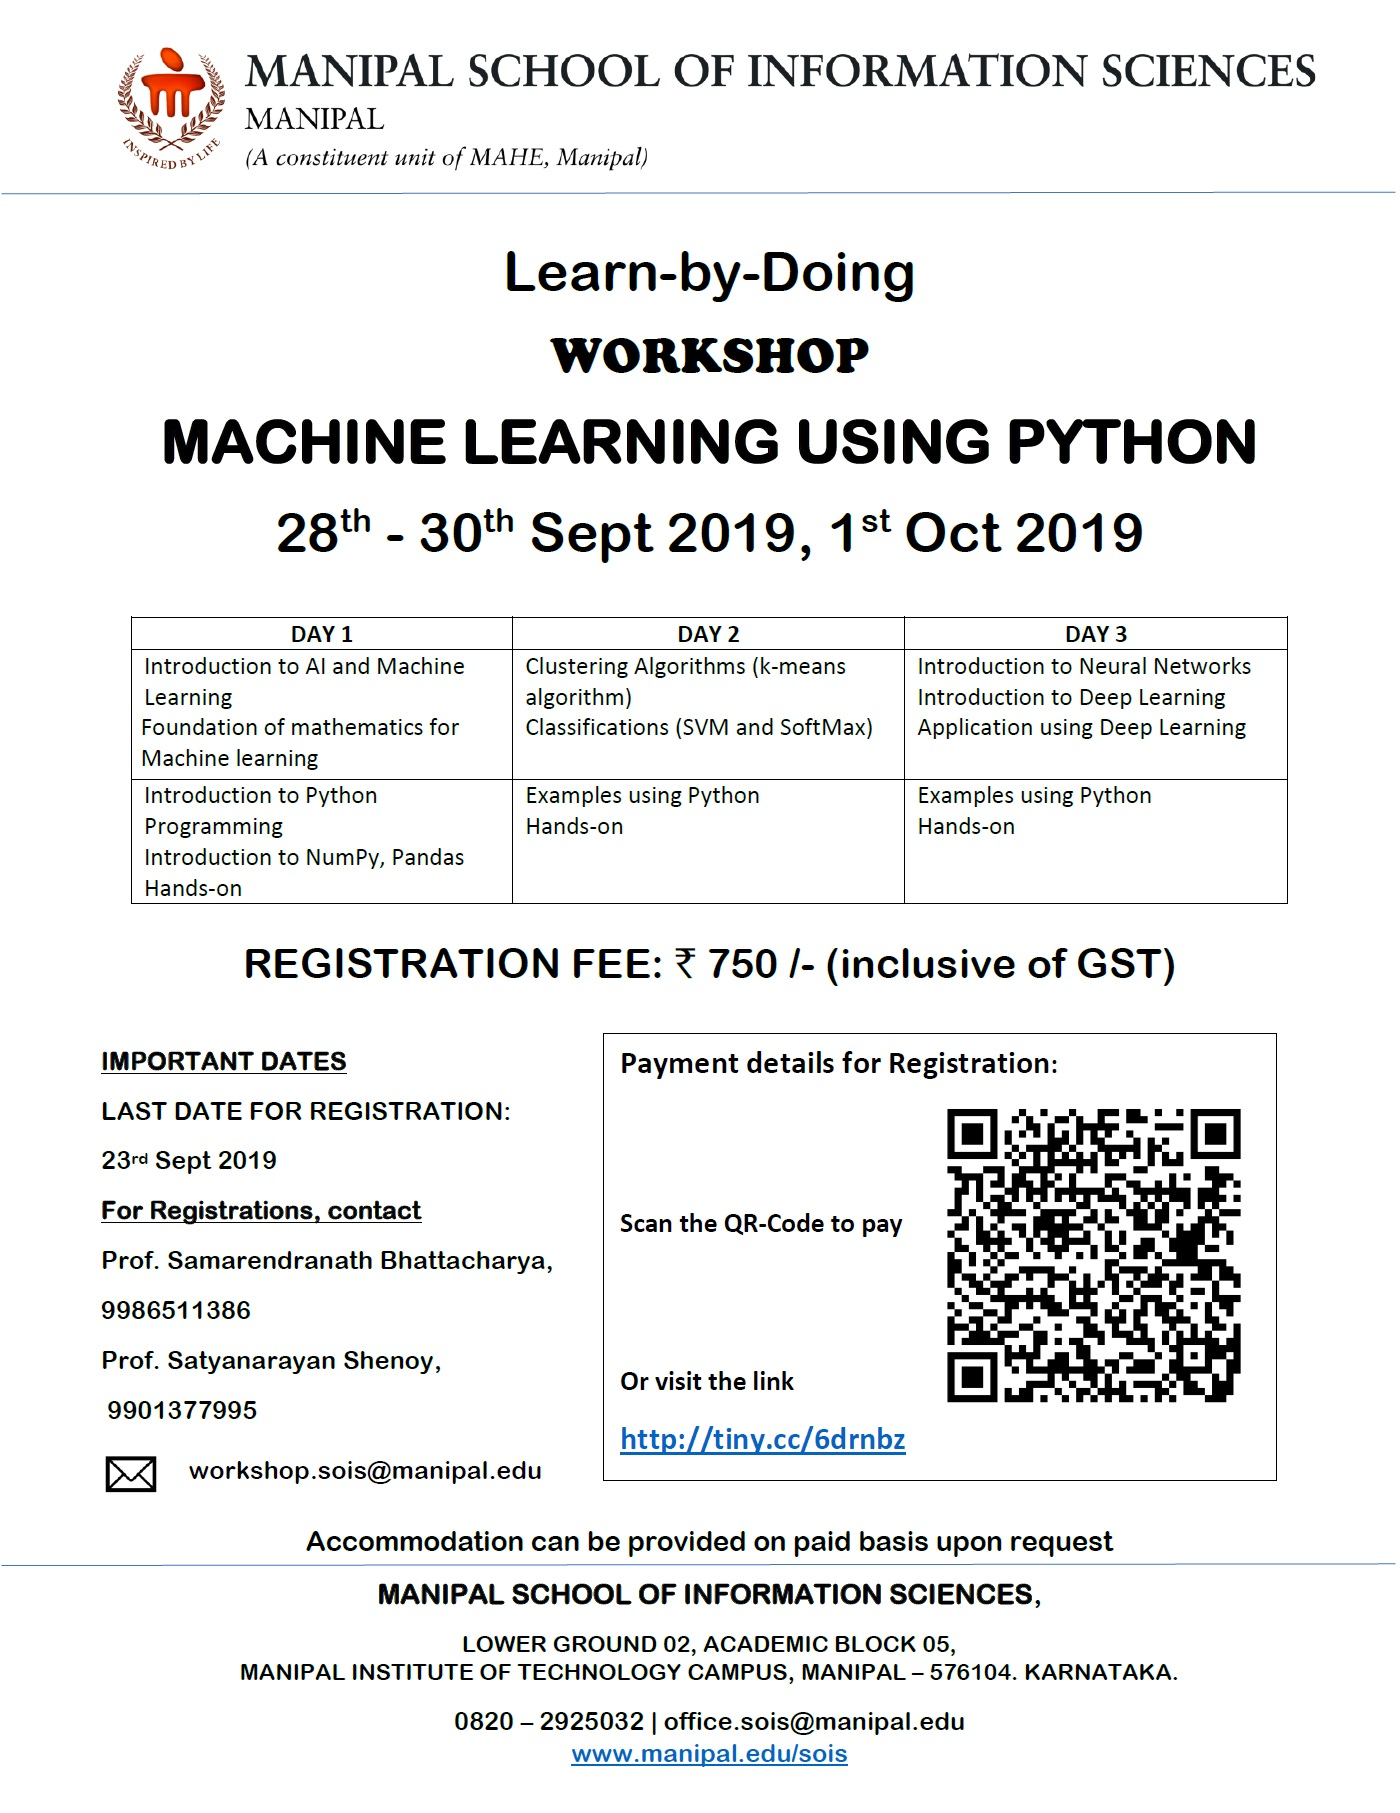 Machine Learning using Python Learn-by-Doing Workshop 2019